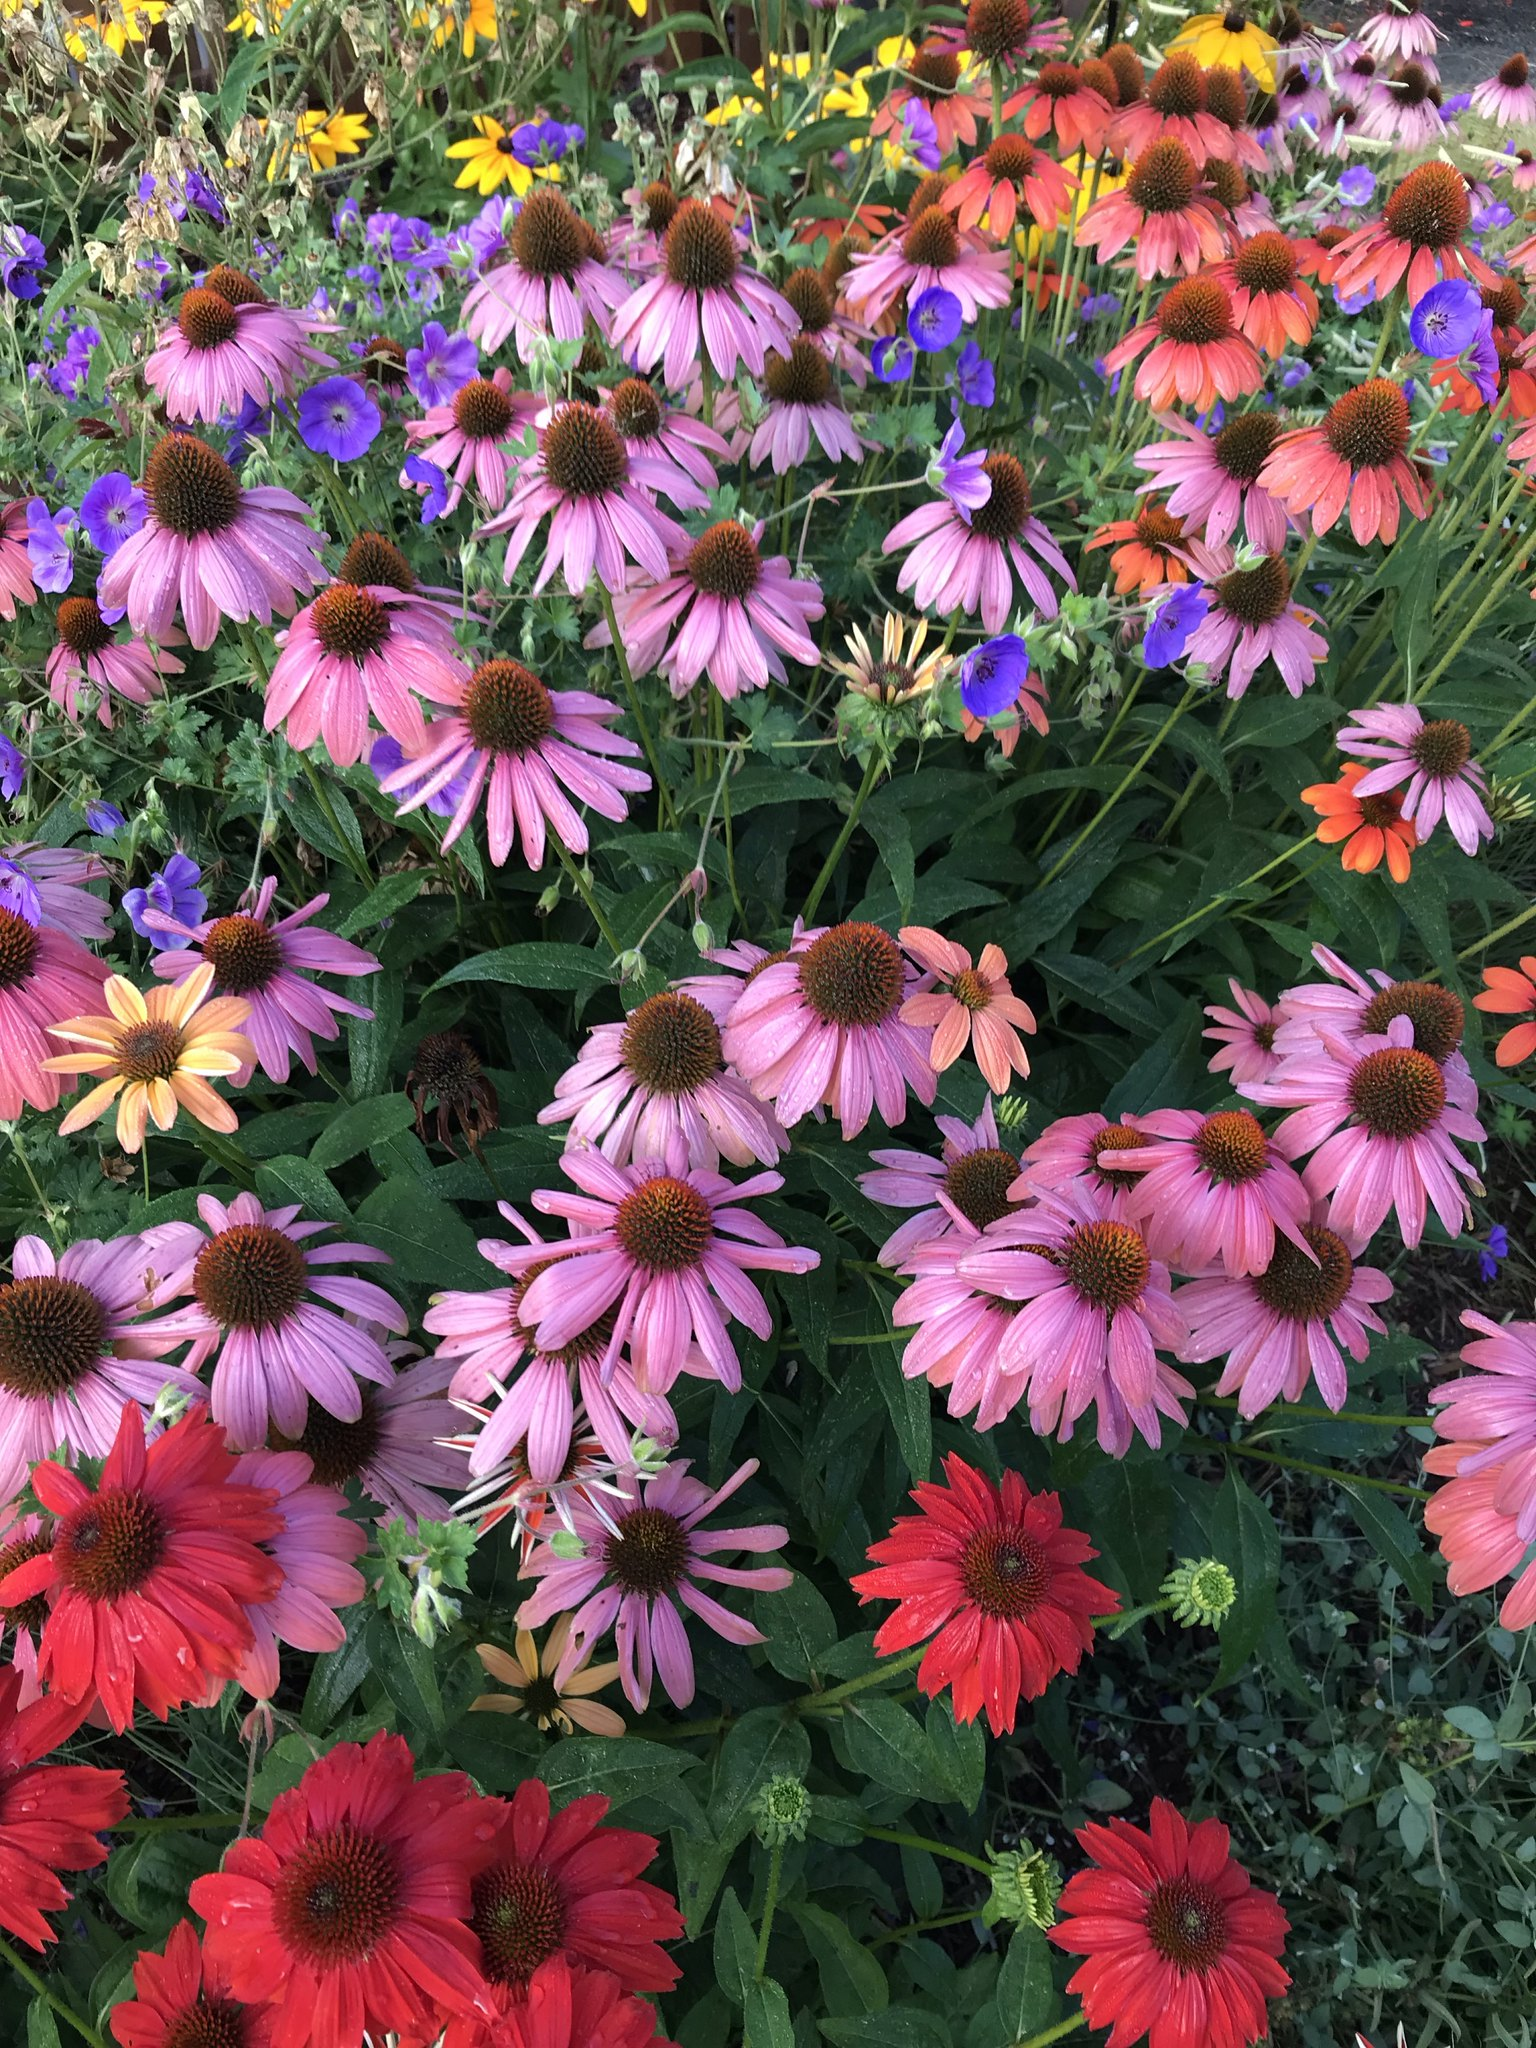 Divide and conquer plants to keep them healthy and productive